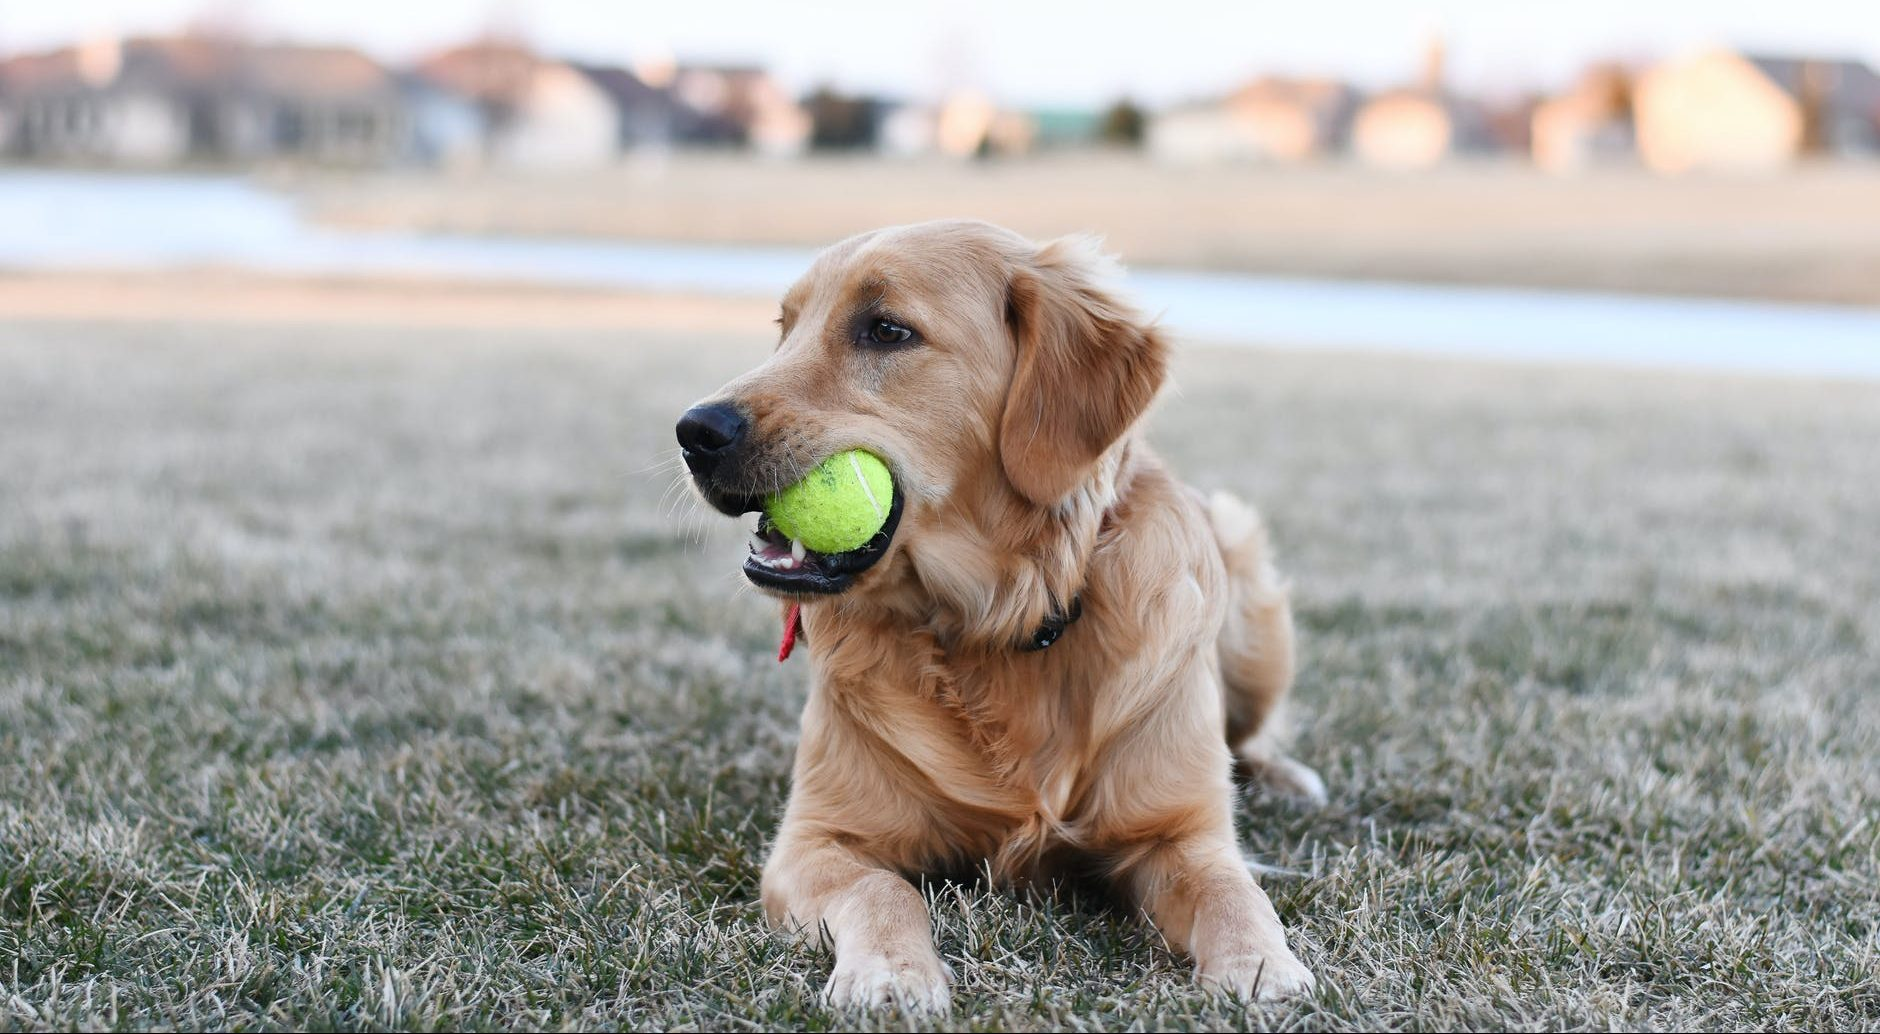 A-Z of dog wellbeing: Balls!